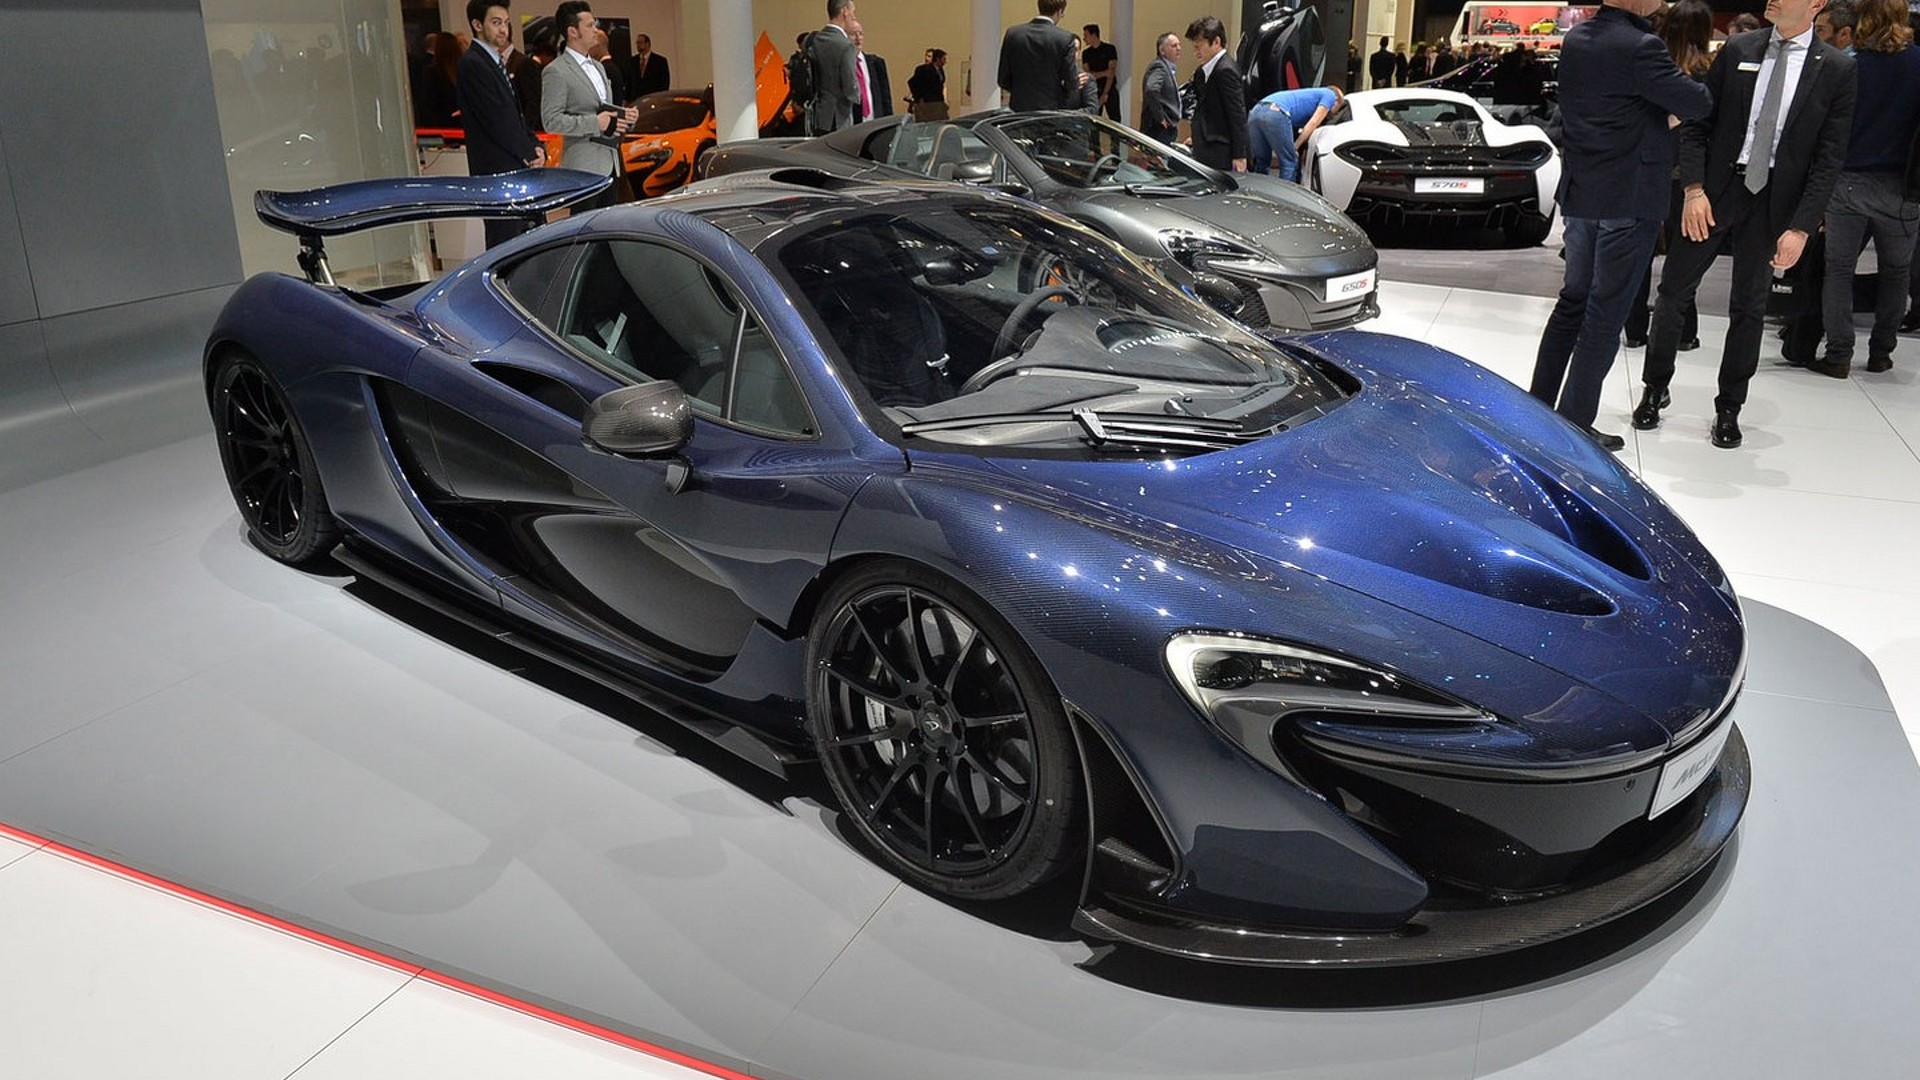 McLaren P1 lands in Geneva with exposed carbon fiber body